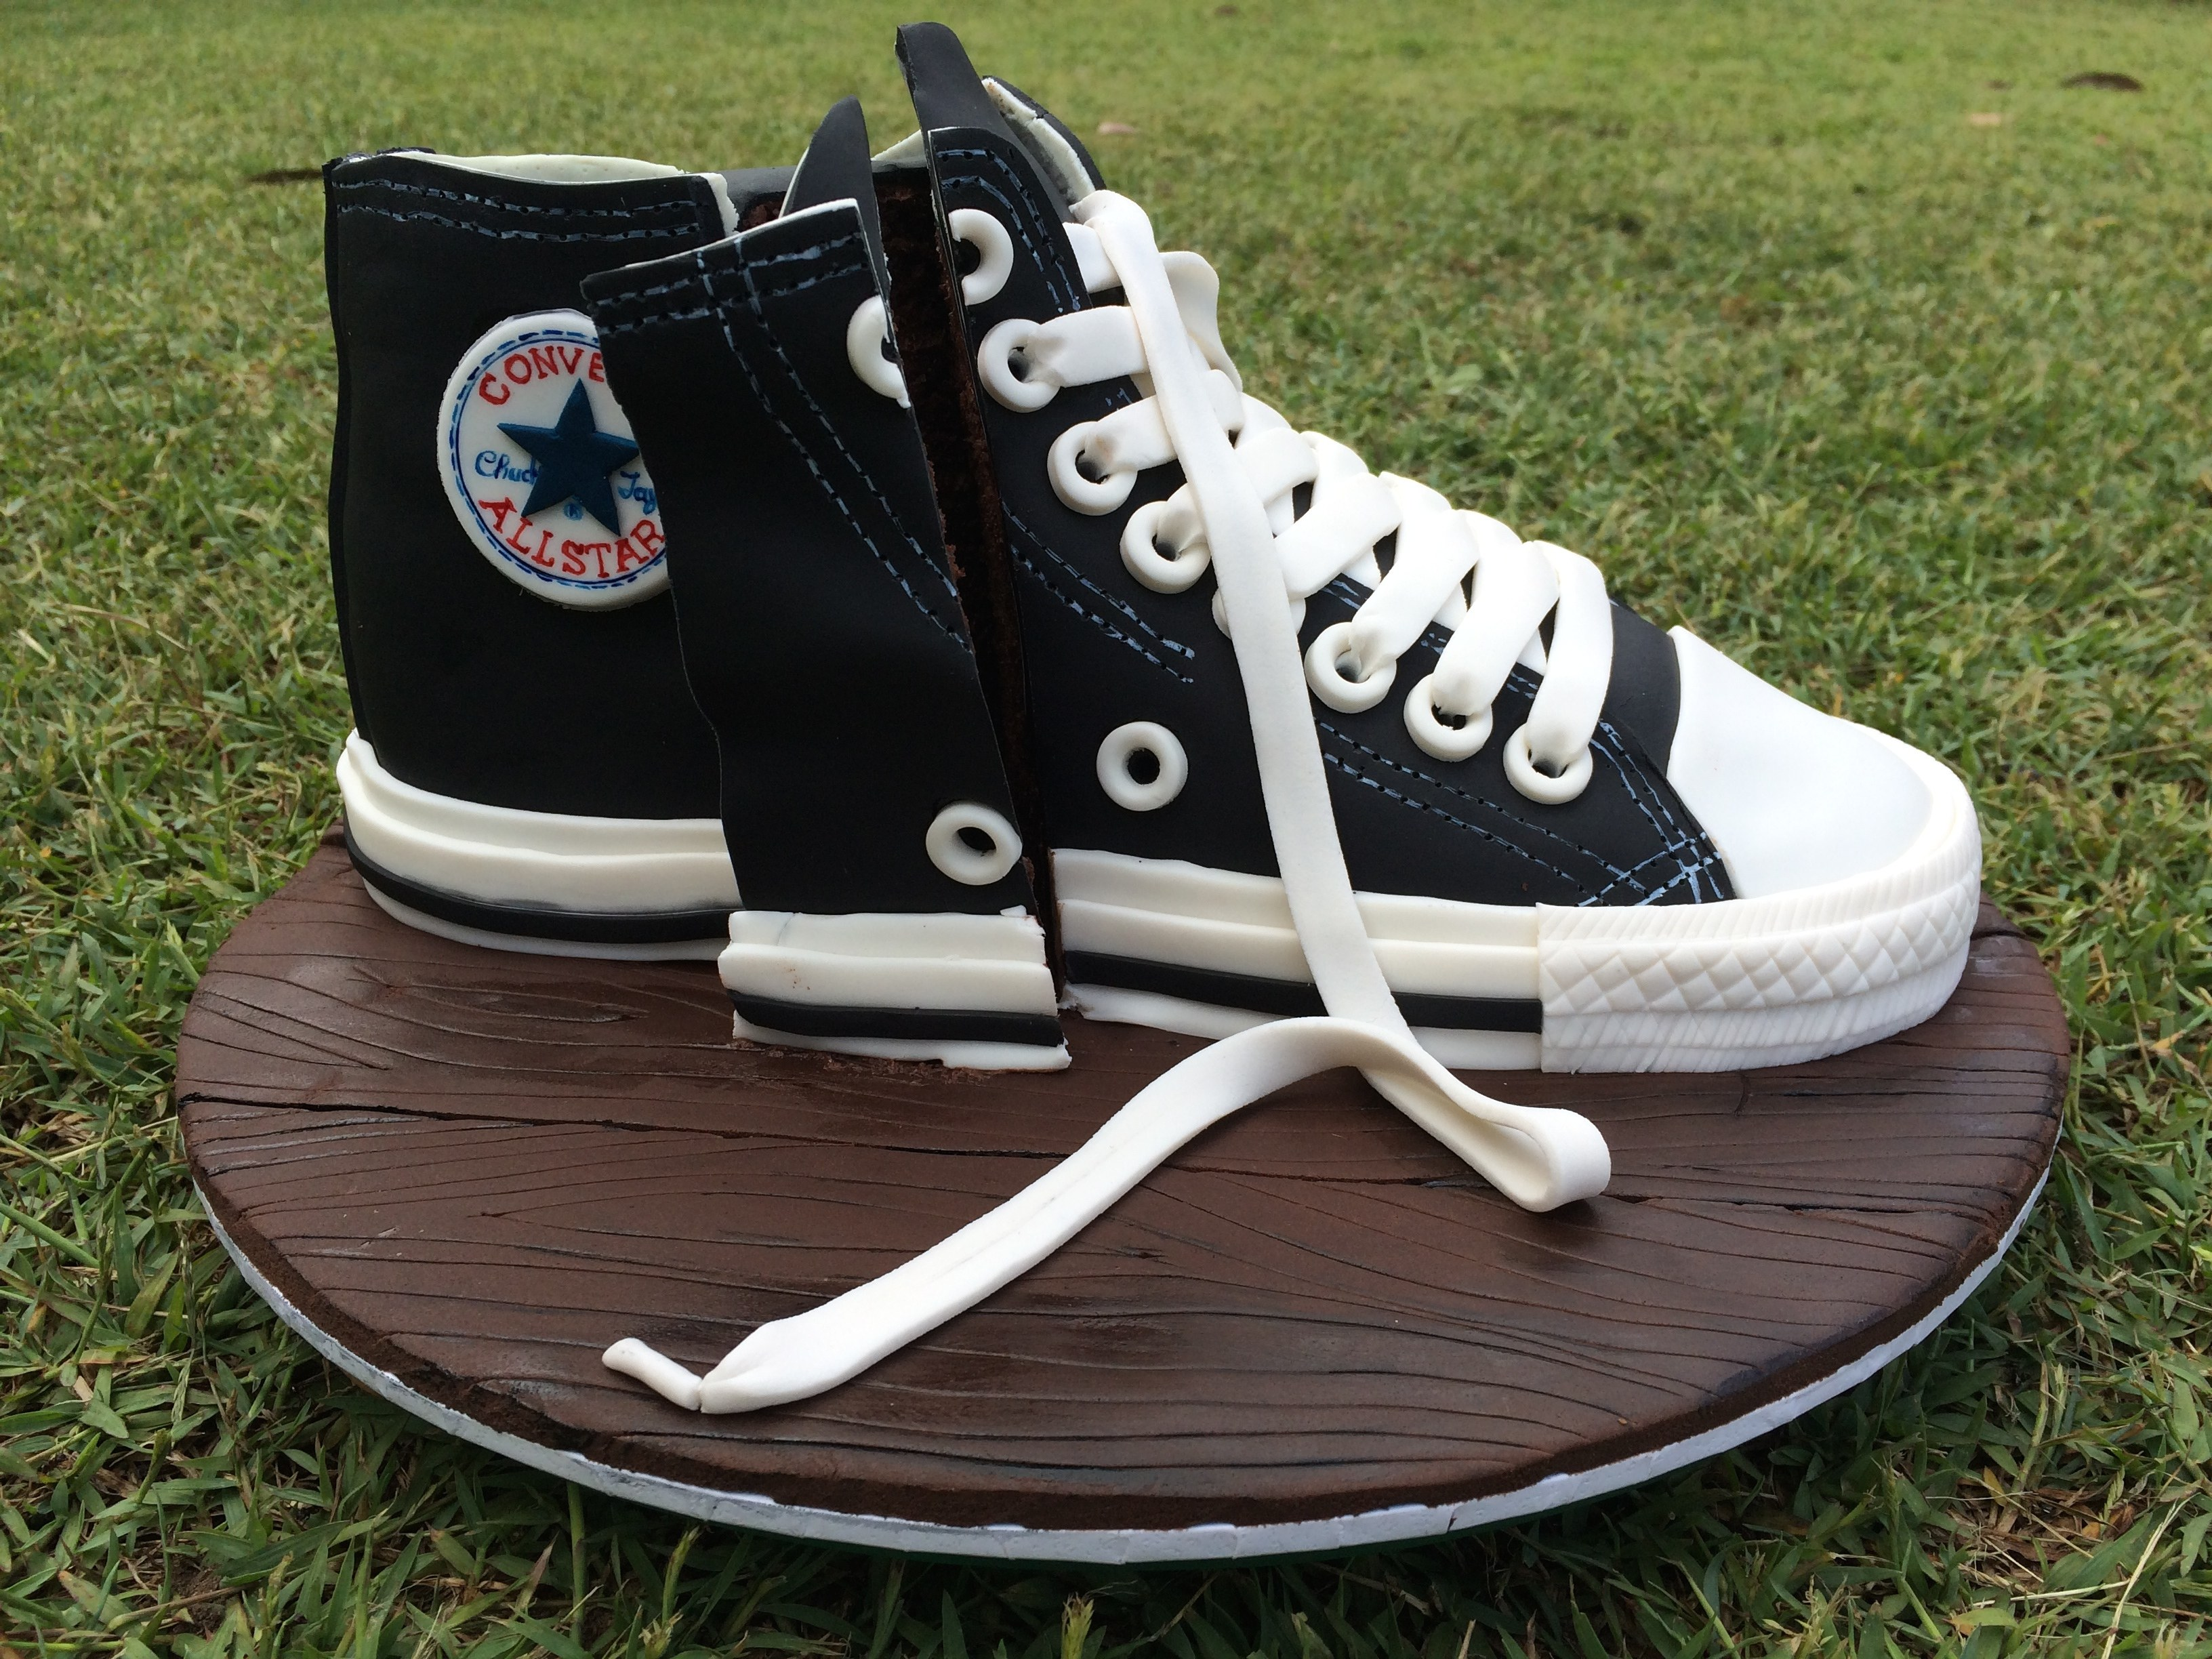 ganso tonto amor  HowToCookThat : Cakes, Dessert & Chocolate | Converse Sneaker Cake Template  - HowToCookThat : Cakes, Dessert & Chocolate